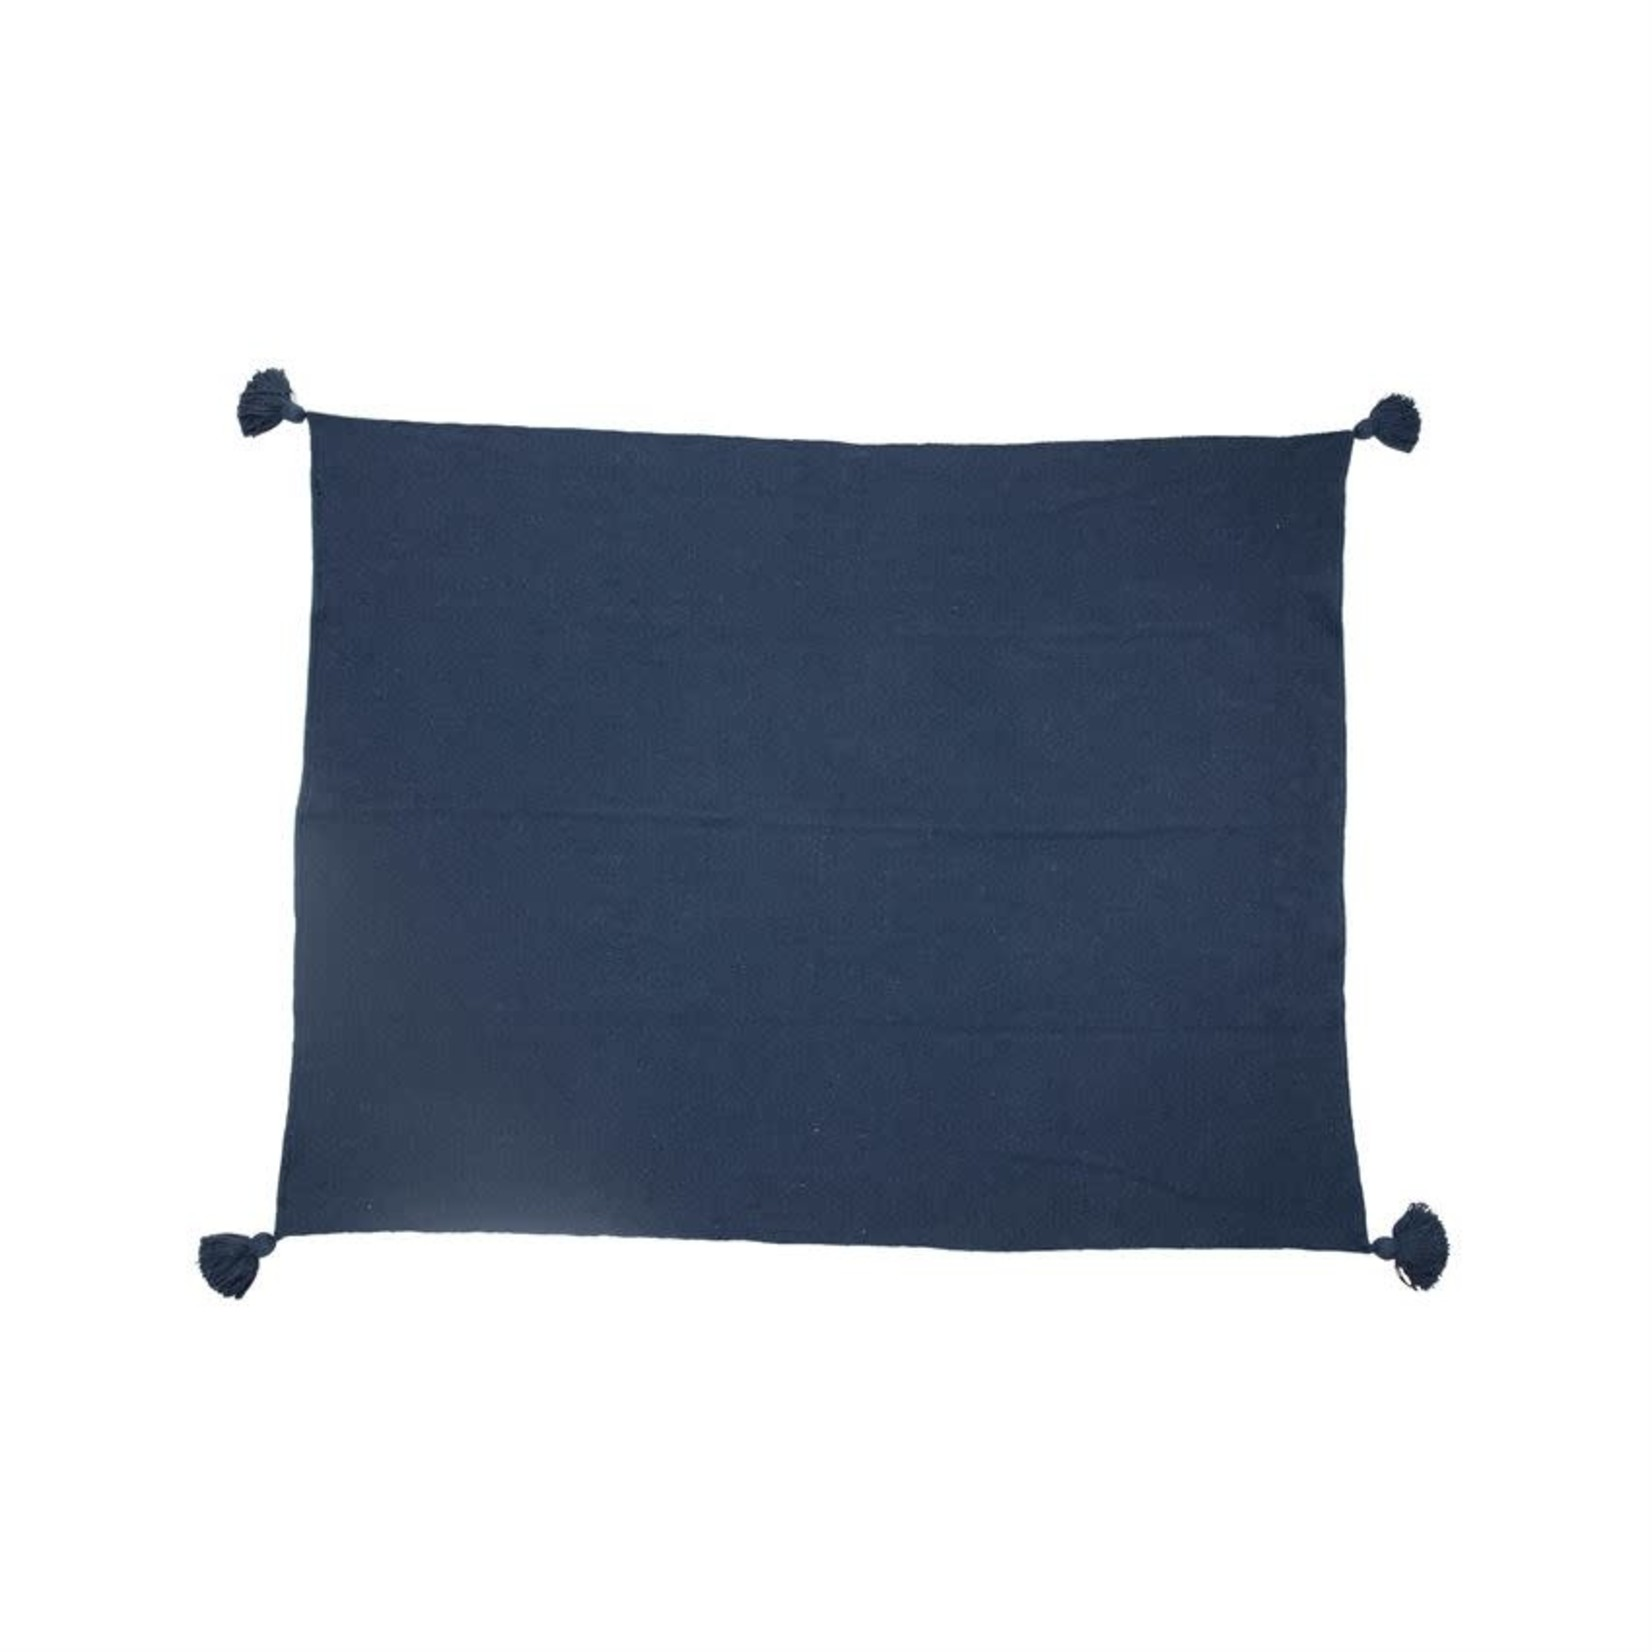 Blue Recycled Cotton Blend Throw